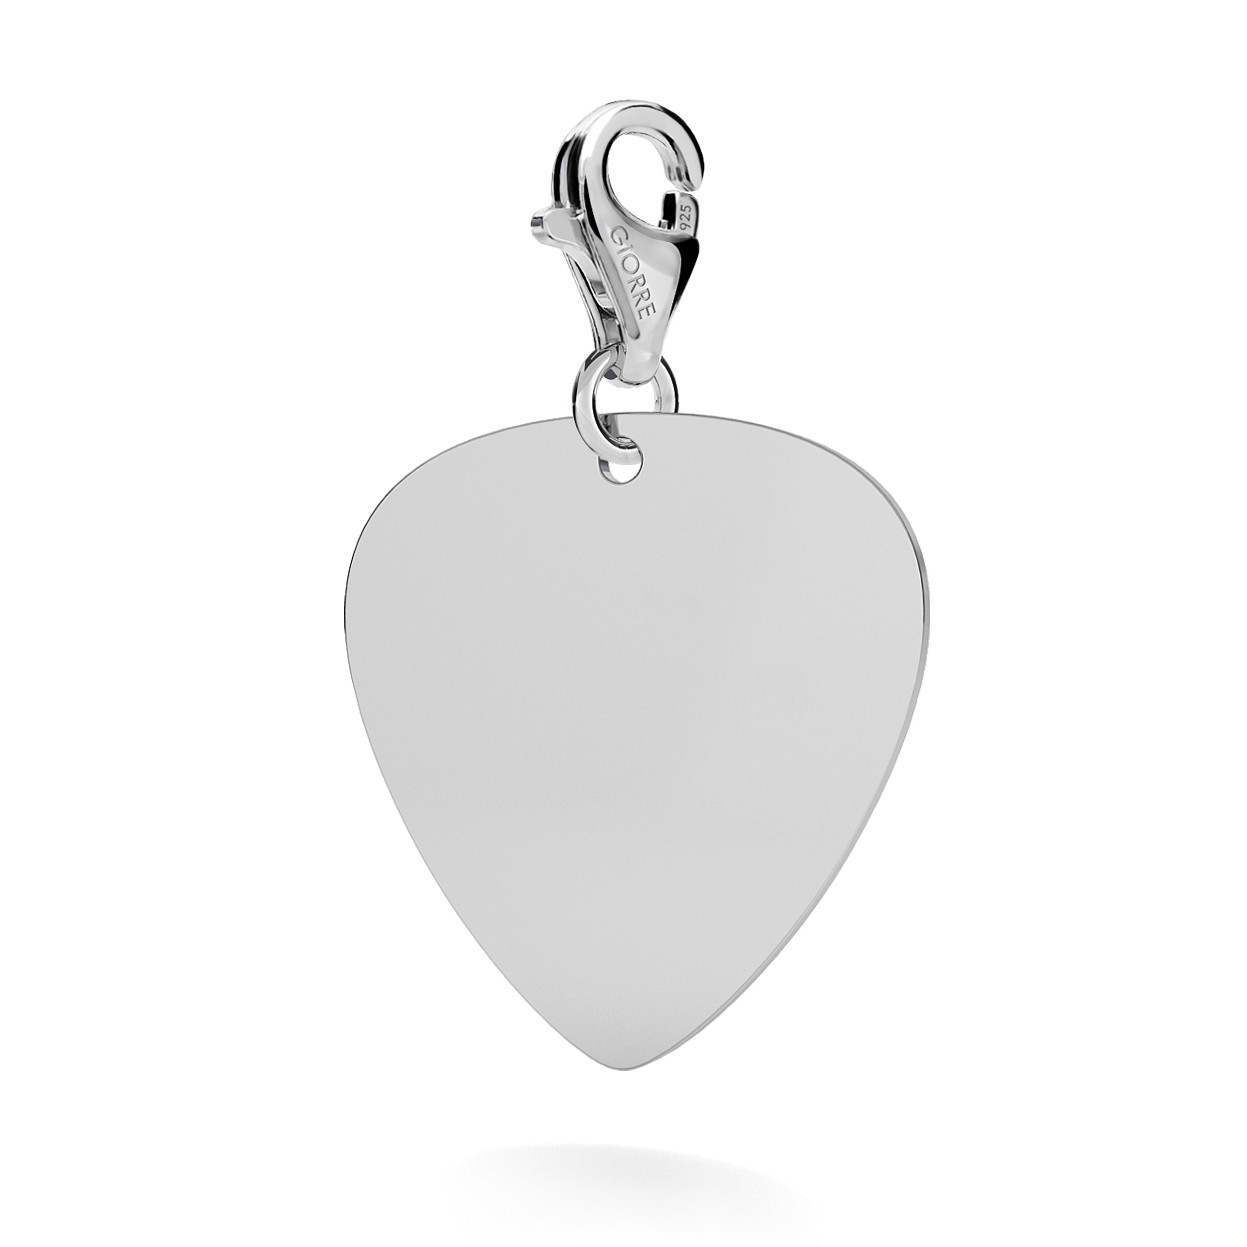 CHARM 112, GUITAR PICK WITH ENGRAVE, STERLING SILVER (925) RHODIUM OR GOLD PLATED